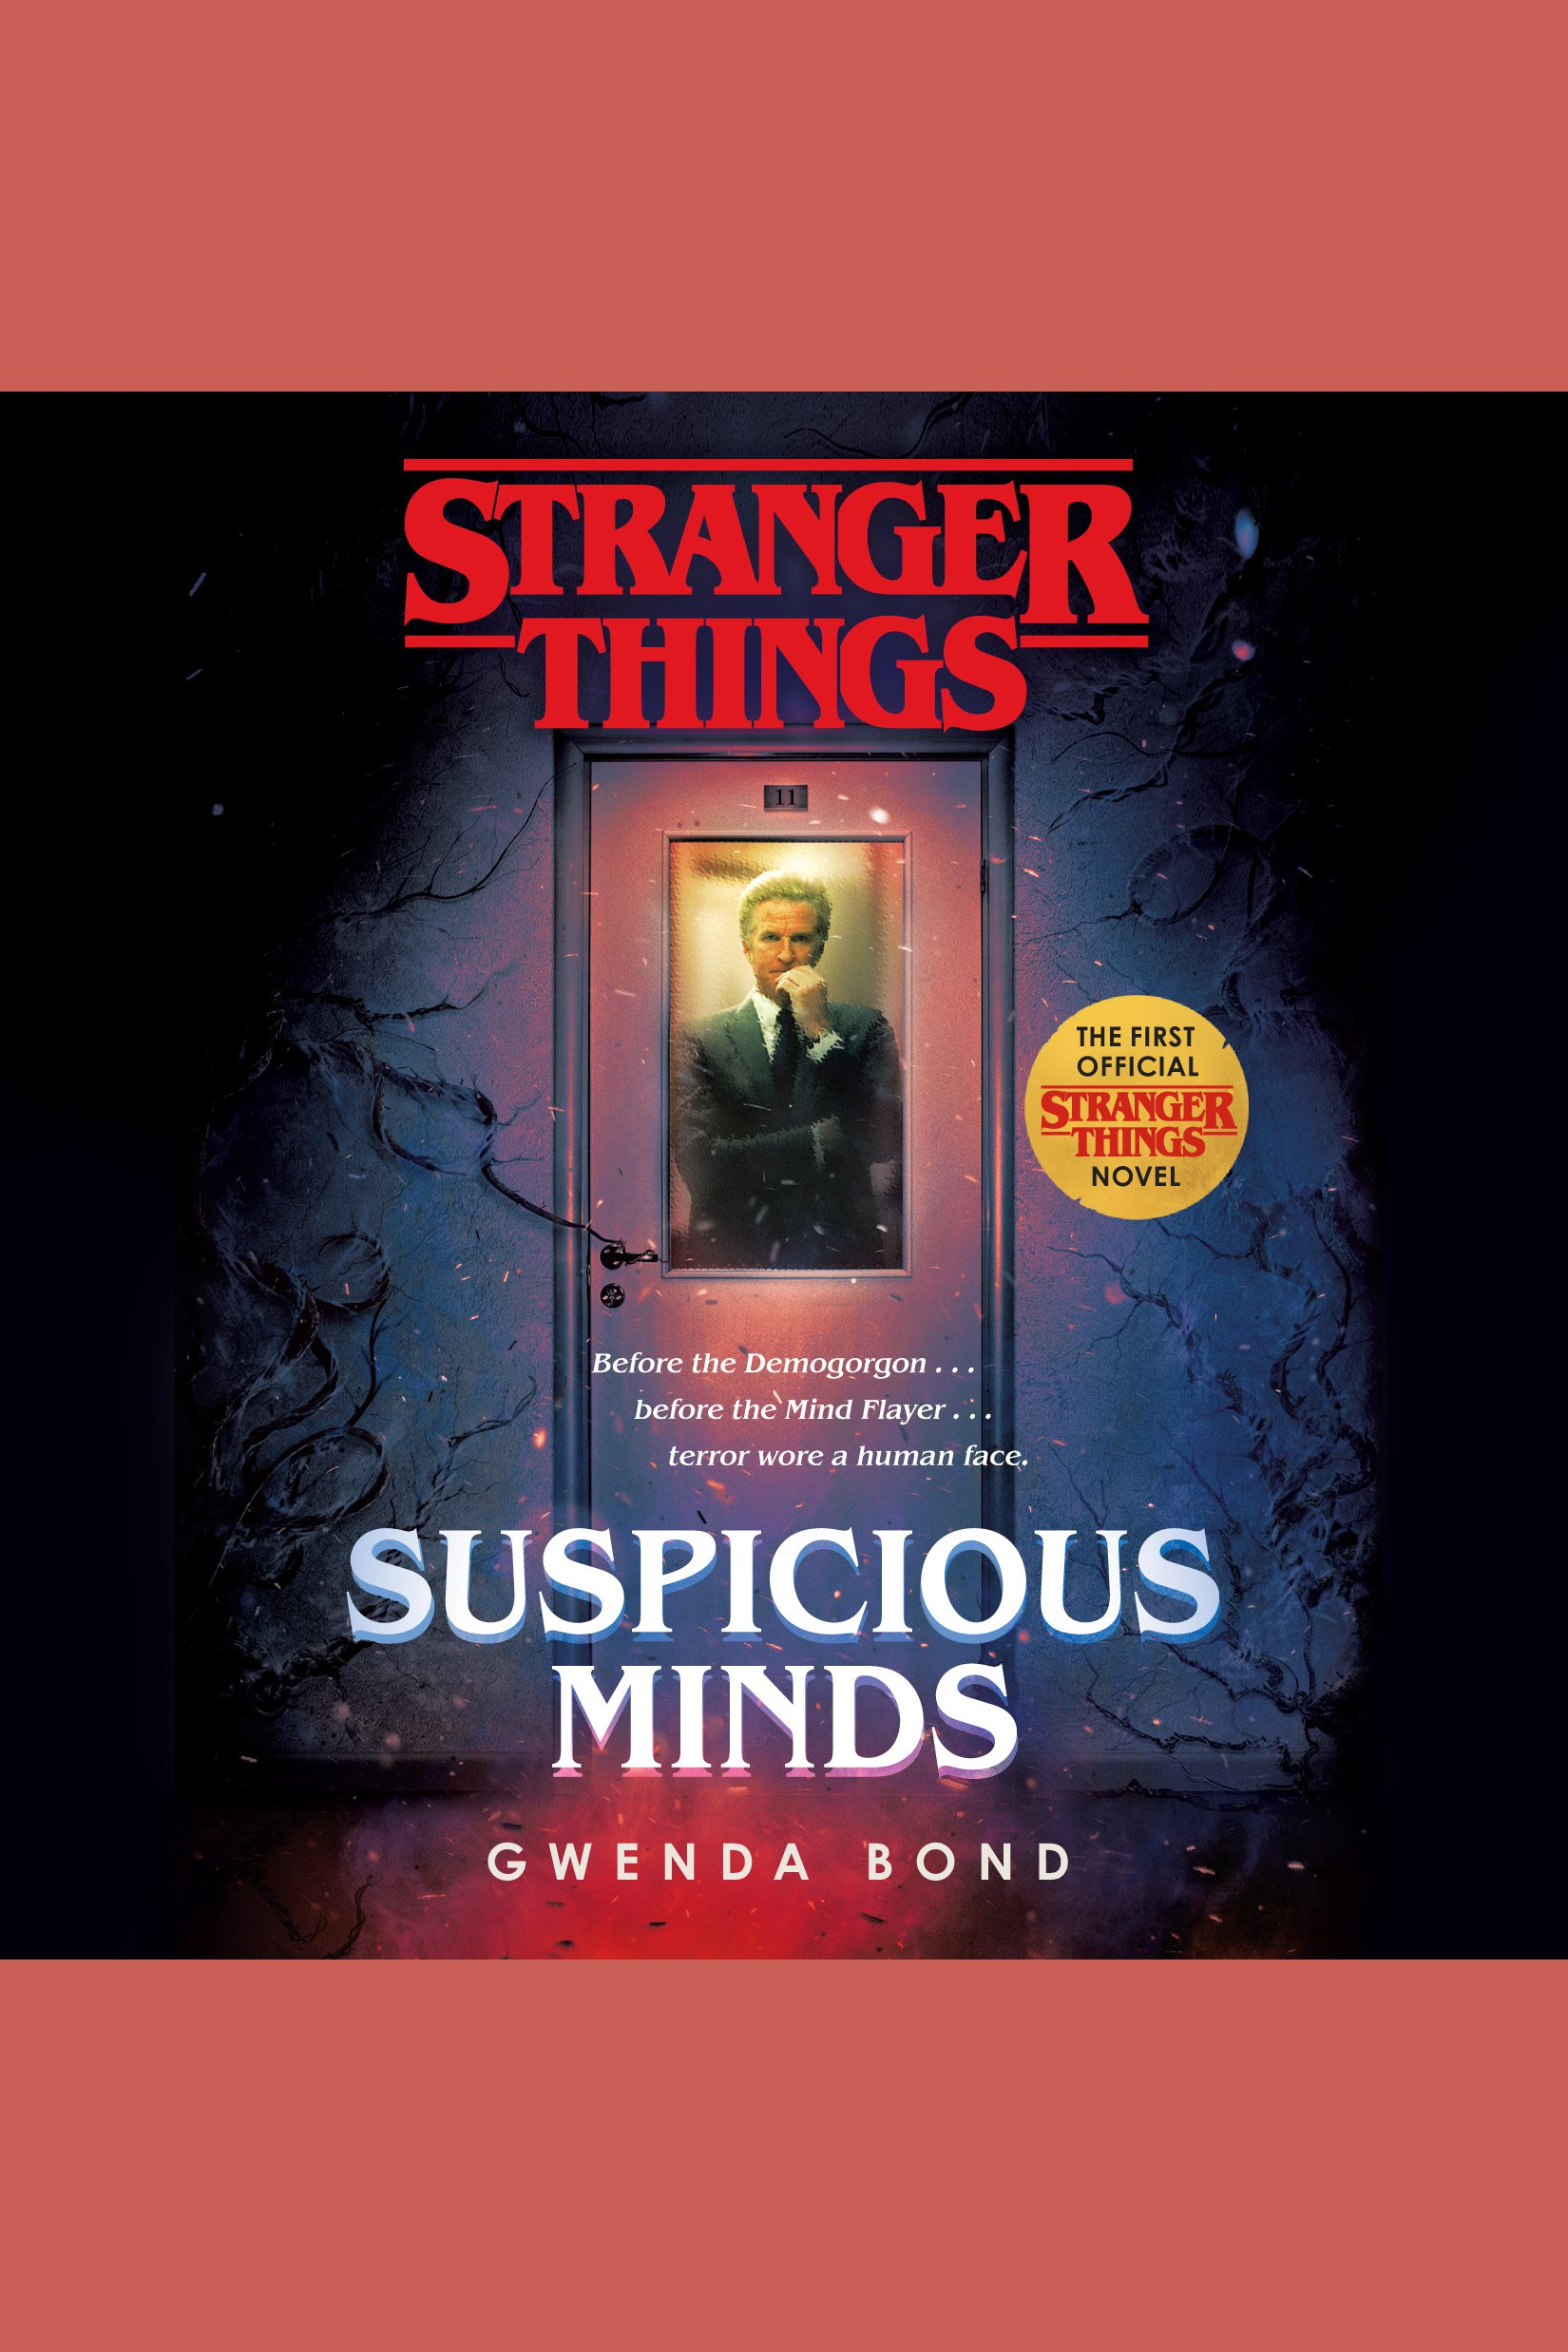 Stranger Things: Suspicious Minds The First Official Stranger Things Novel